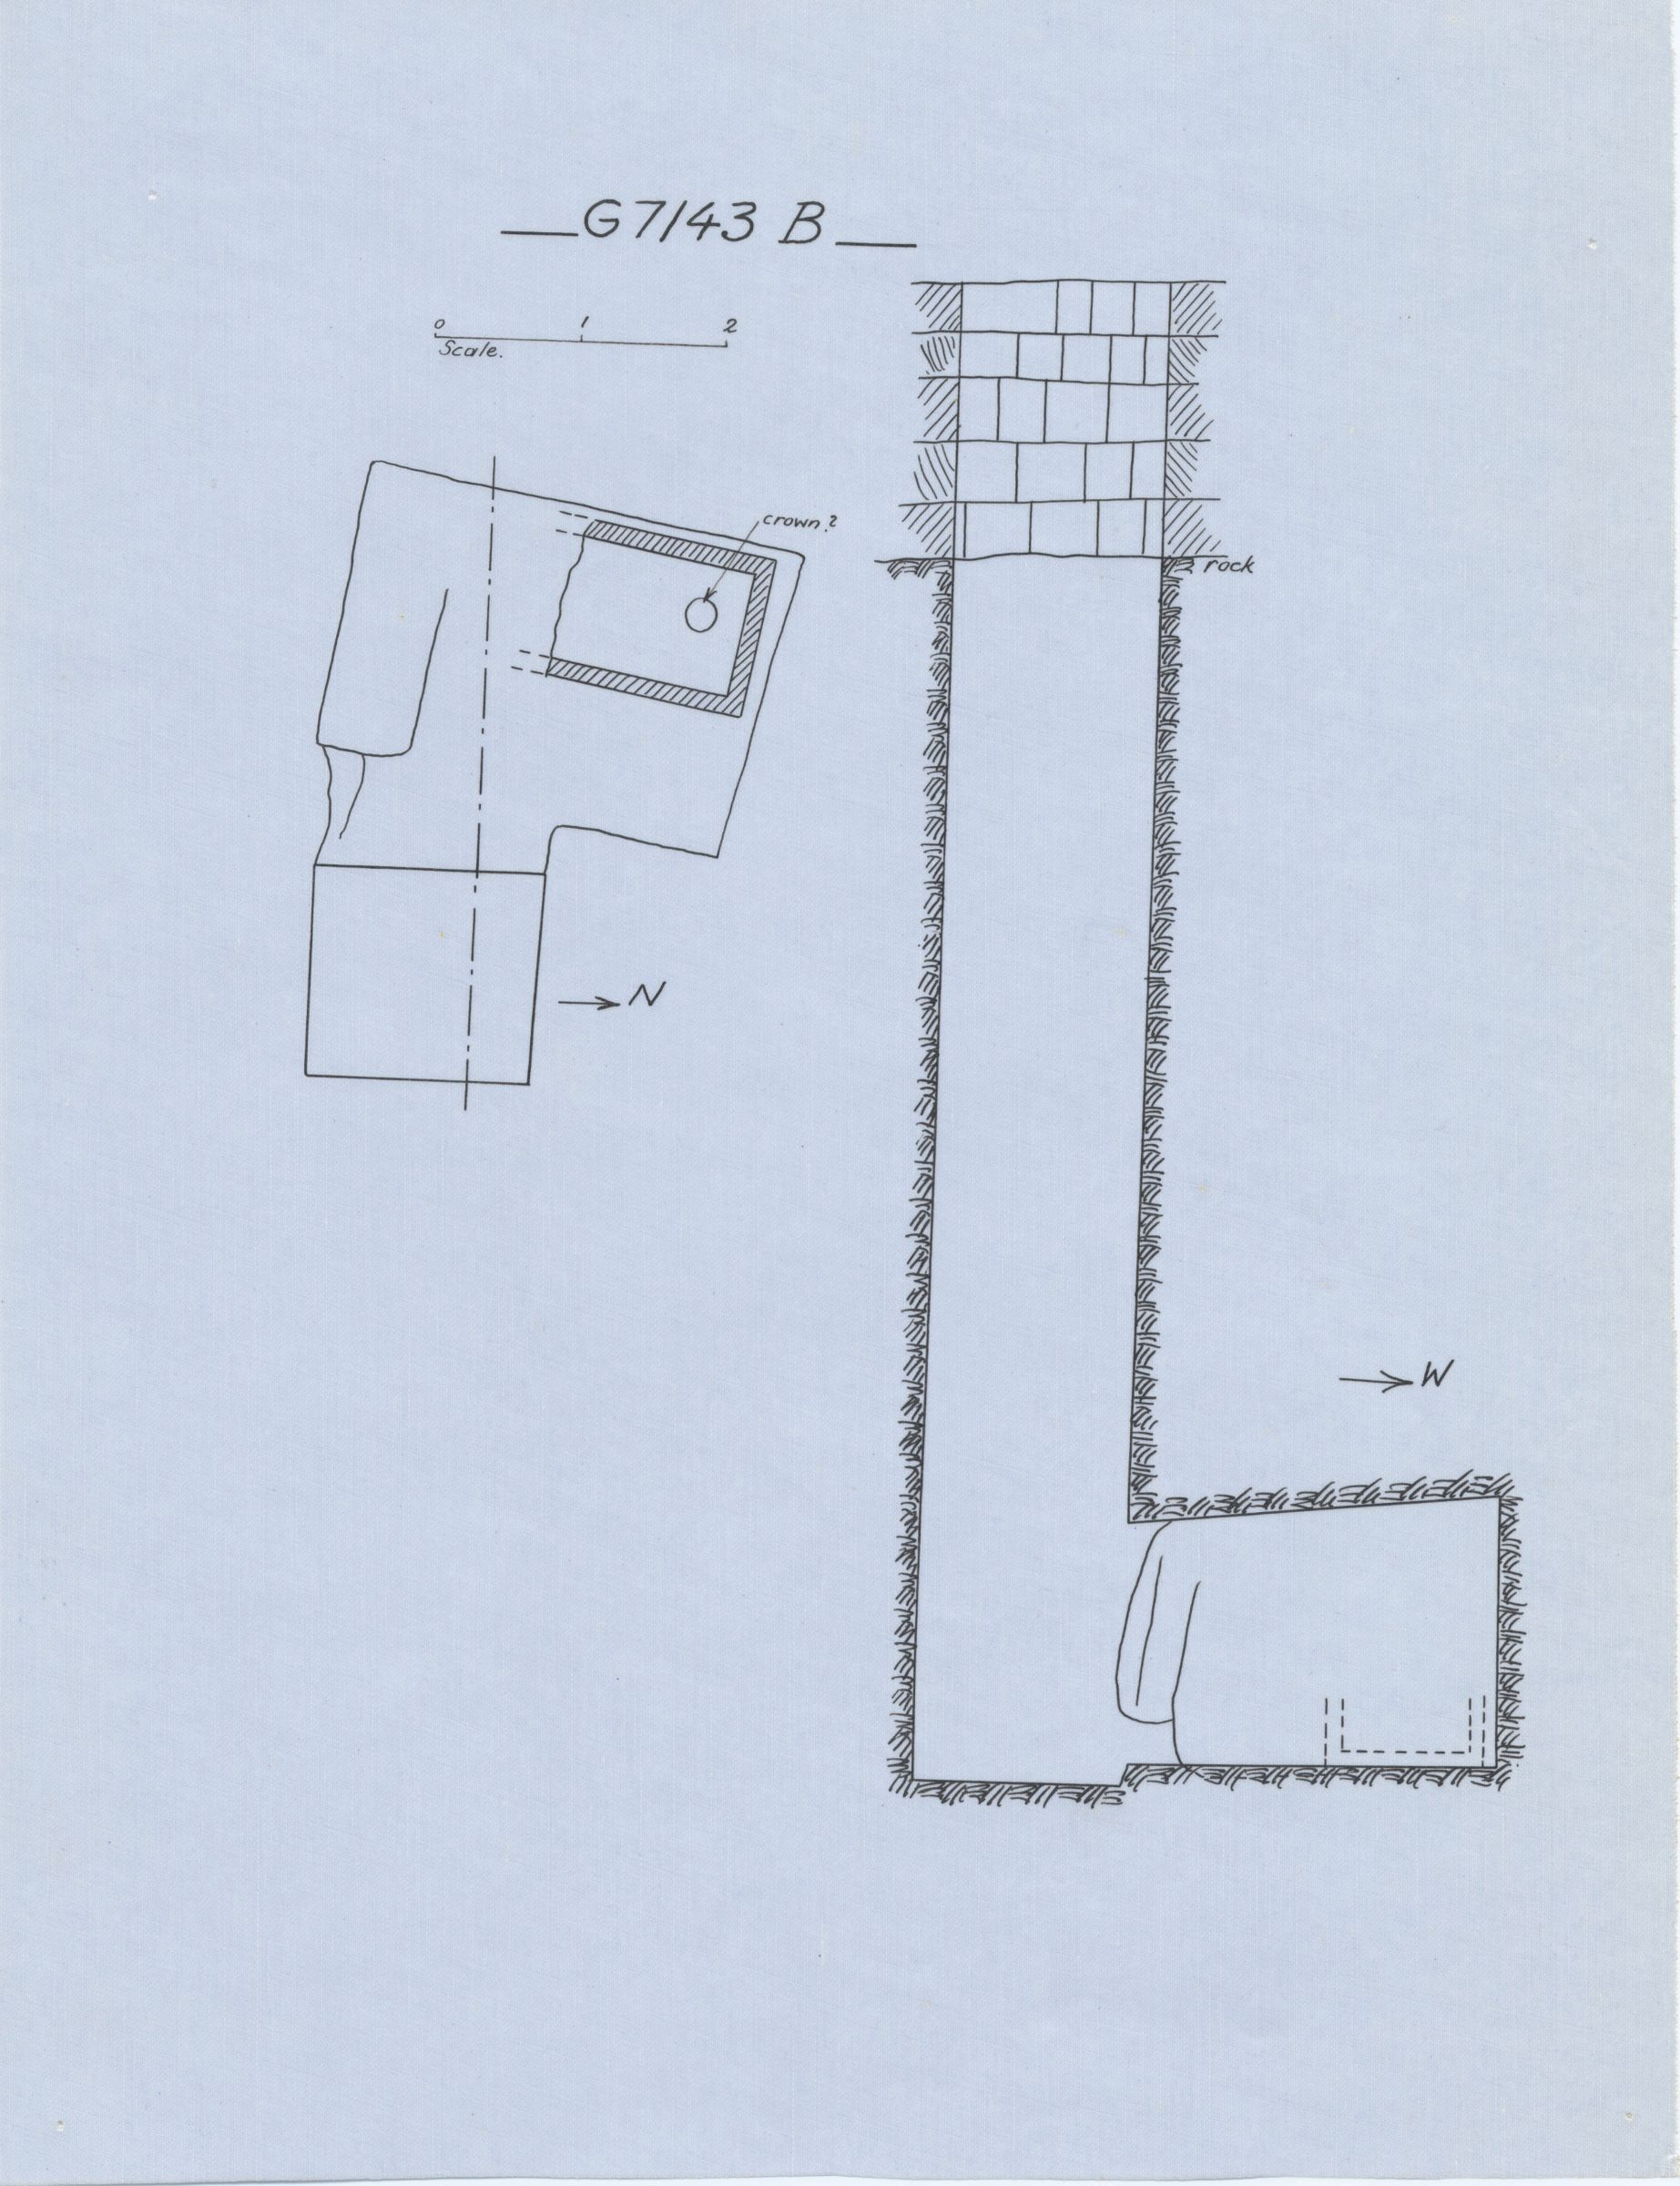 Maps and plans: G 7143, Shaft B